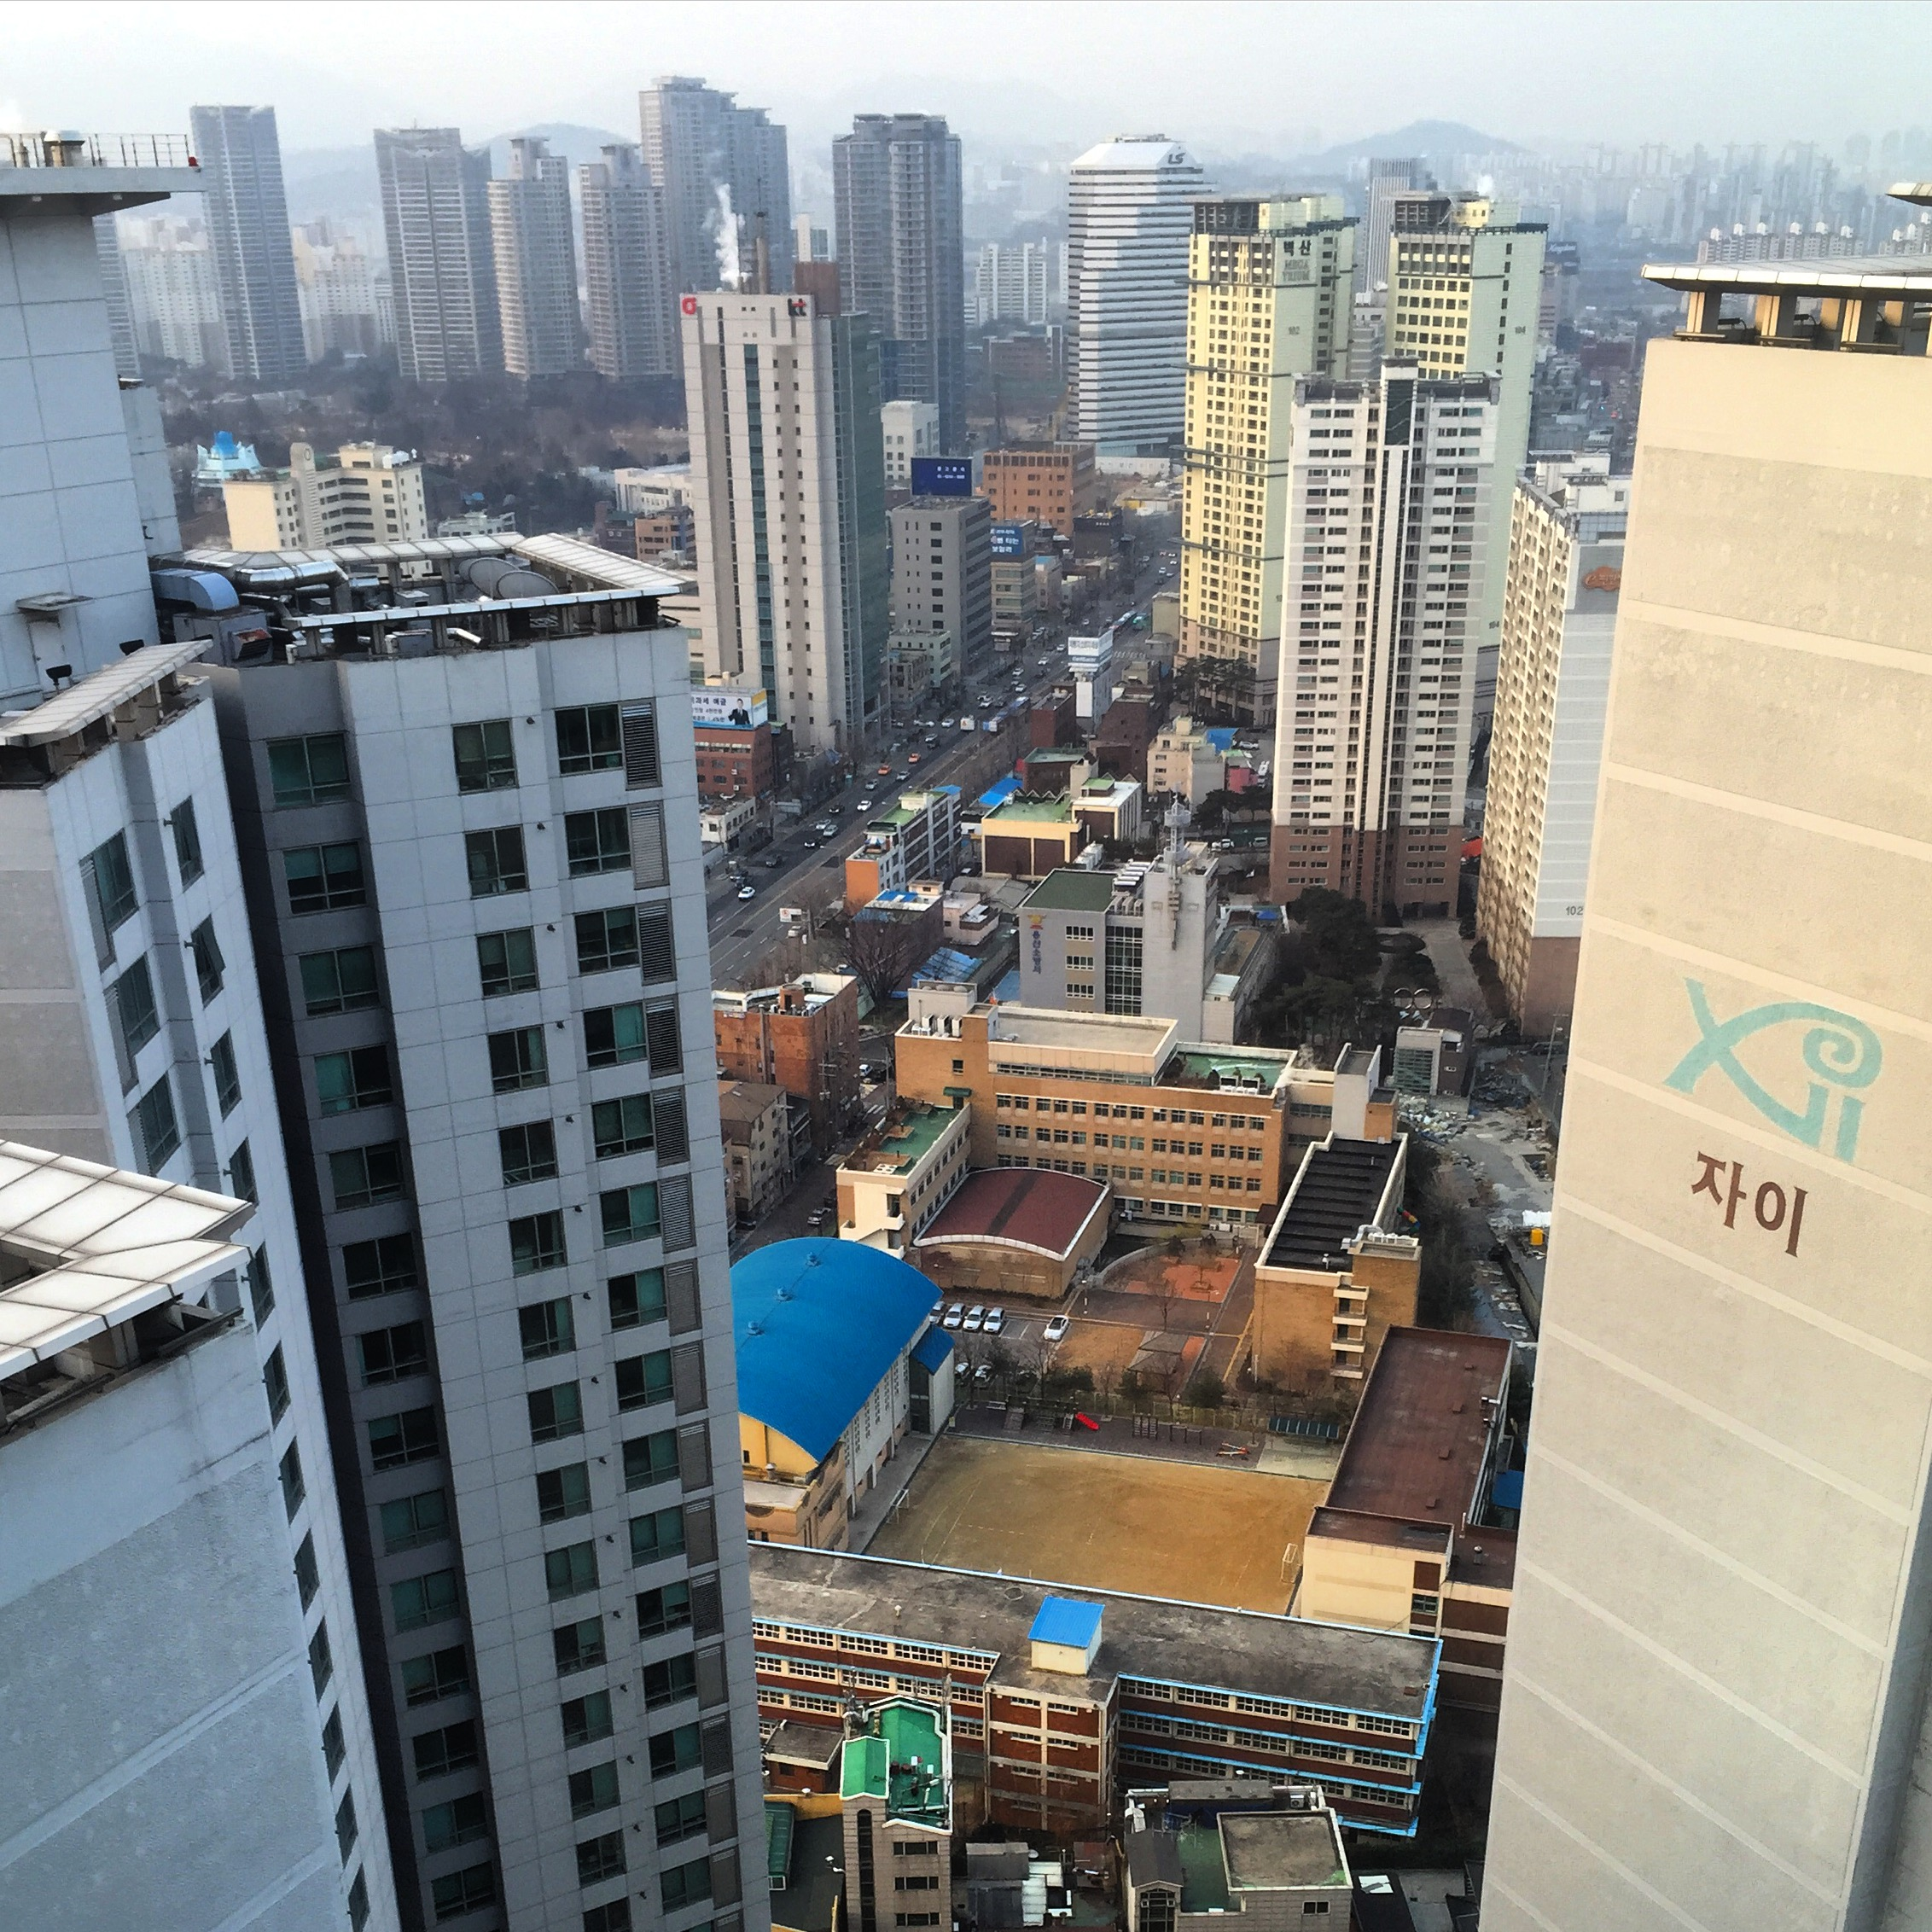 View From My Apartment At Samgakji Station, Seoul